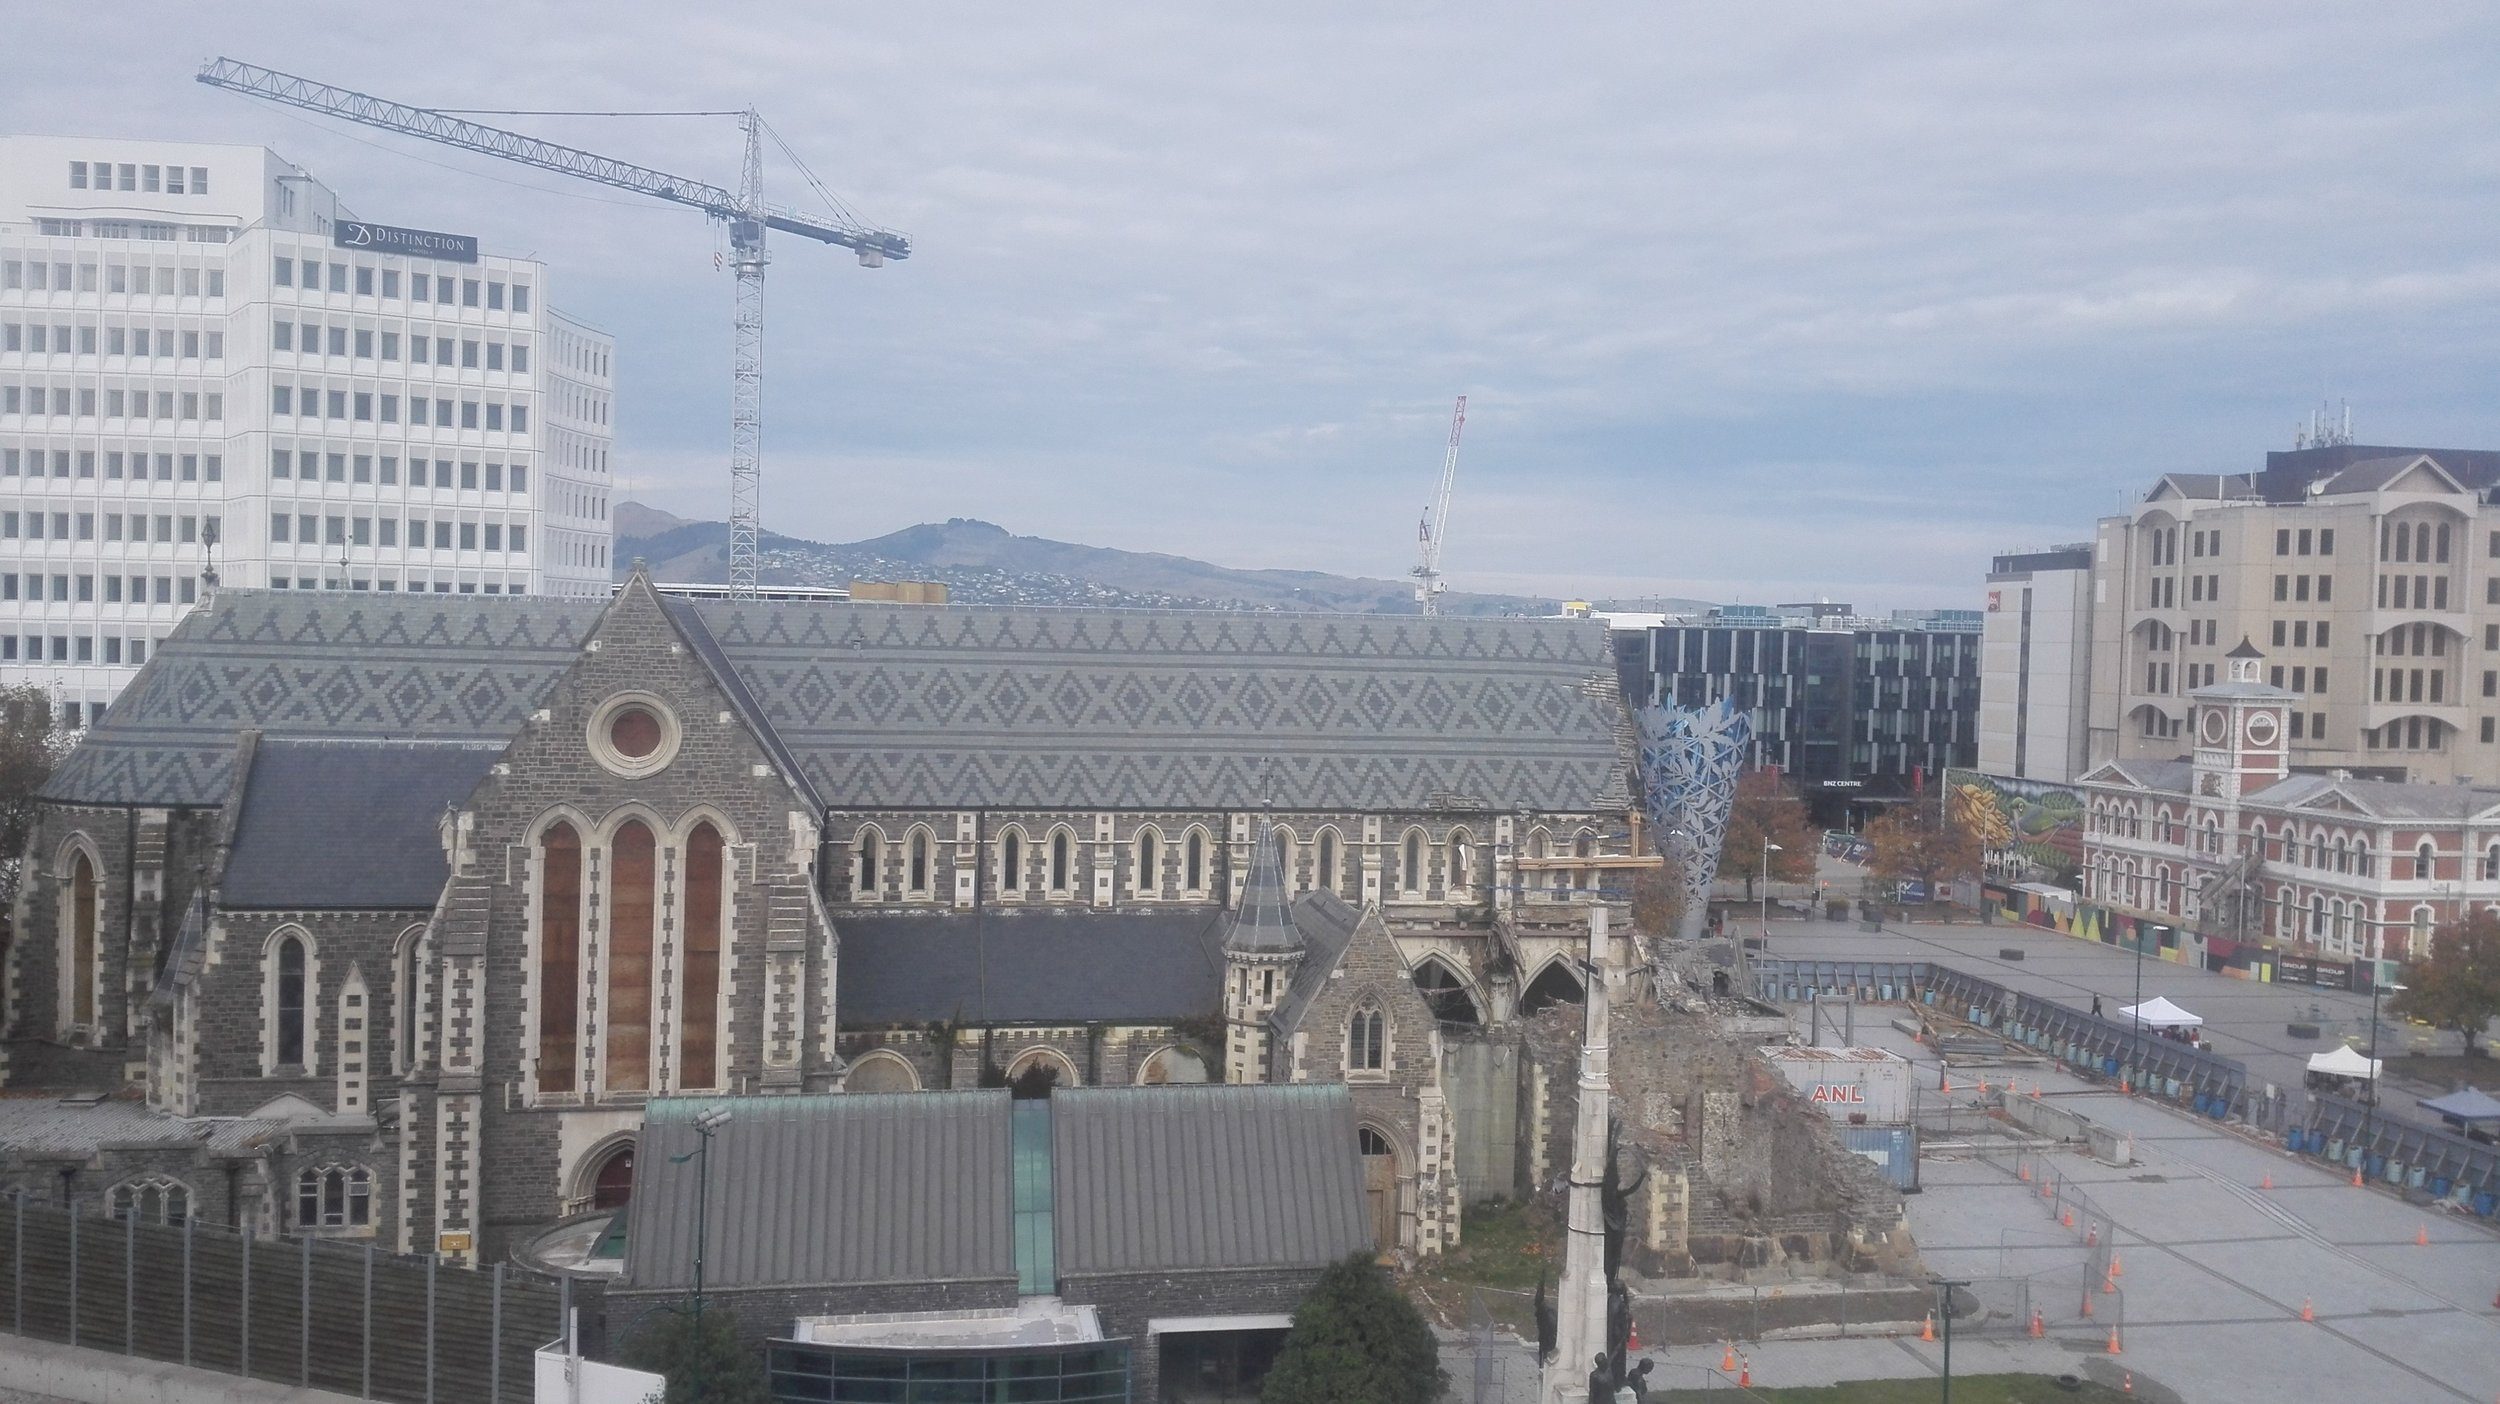 Looking south from Christchurch Central Library over the cathedral towards the Port Hills